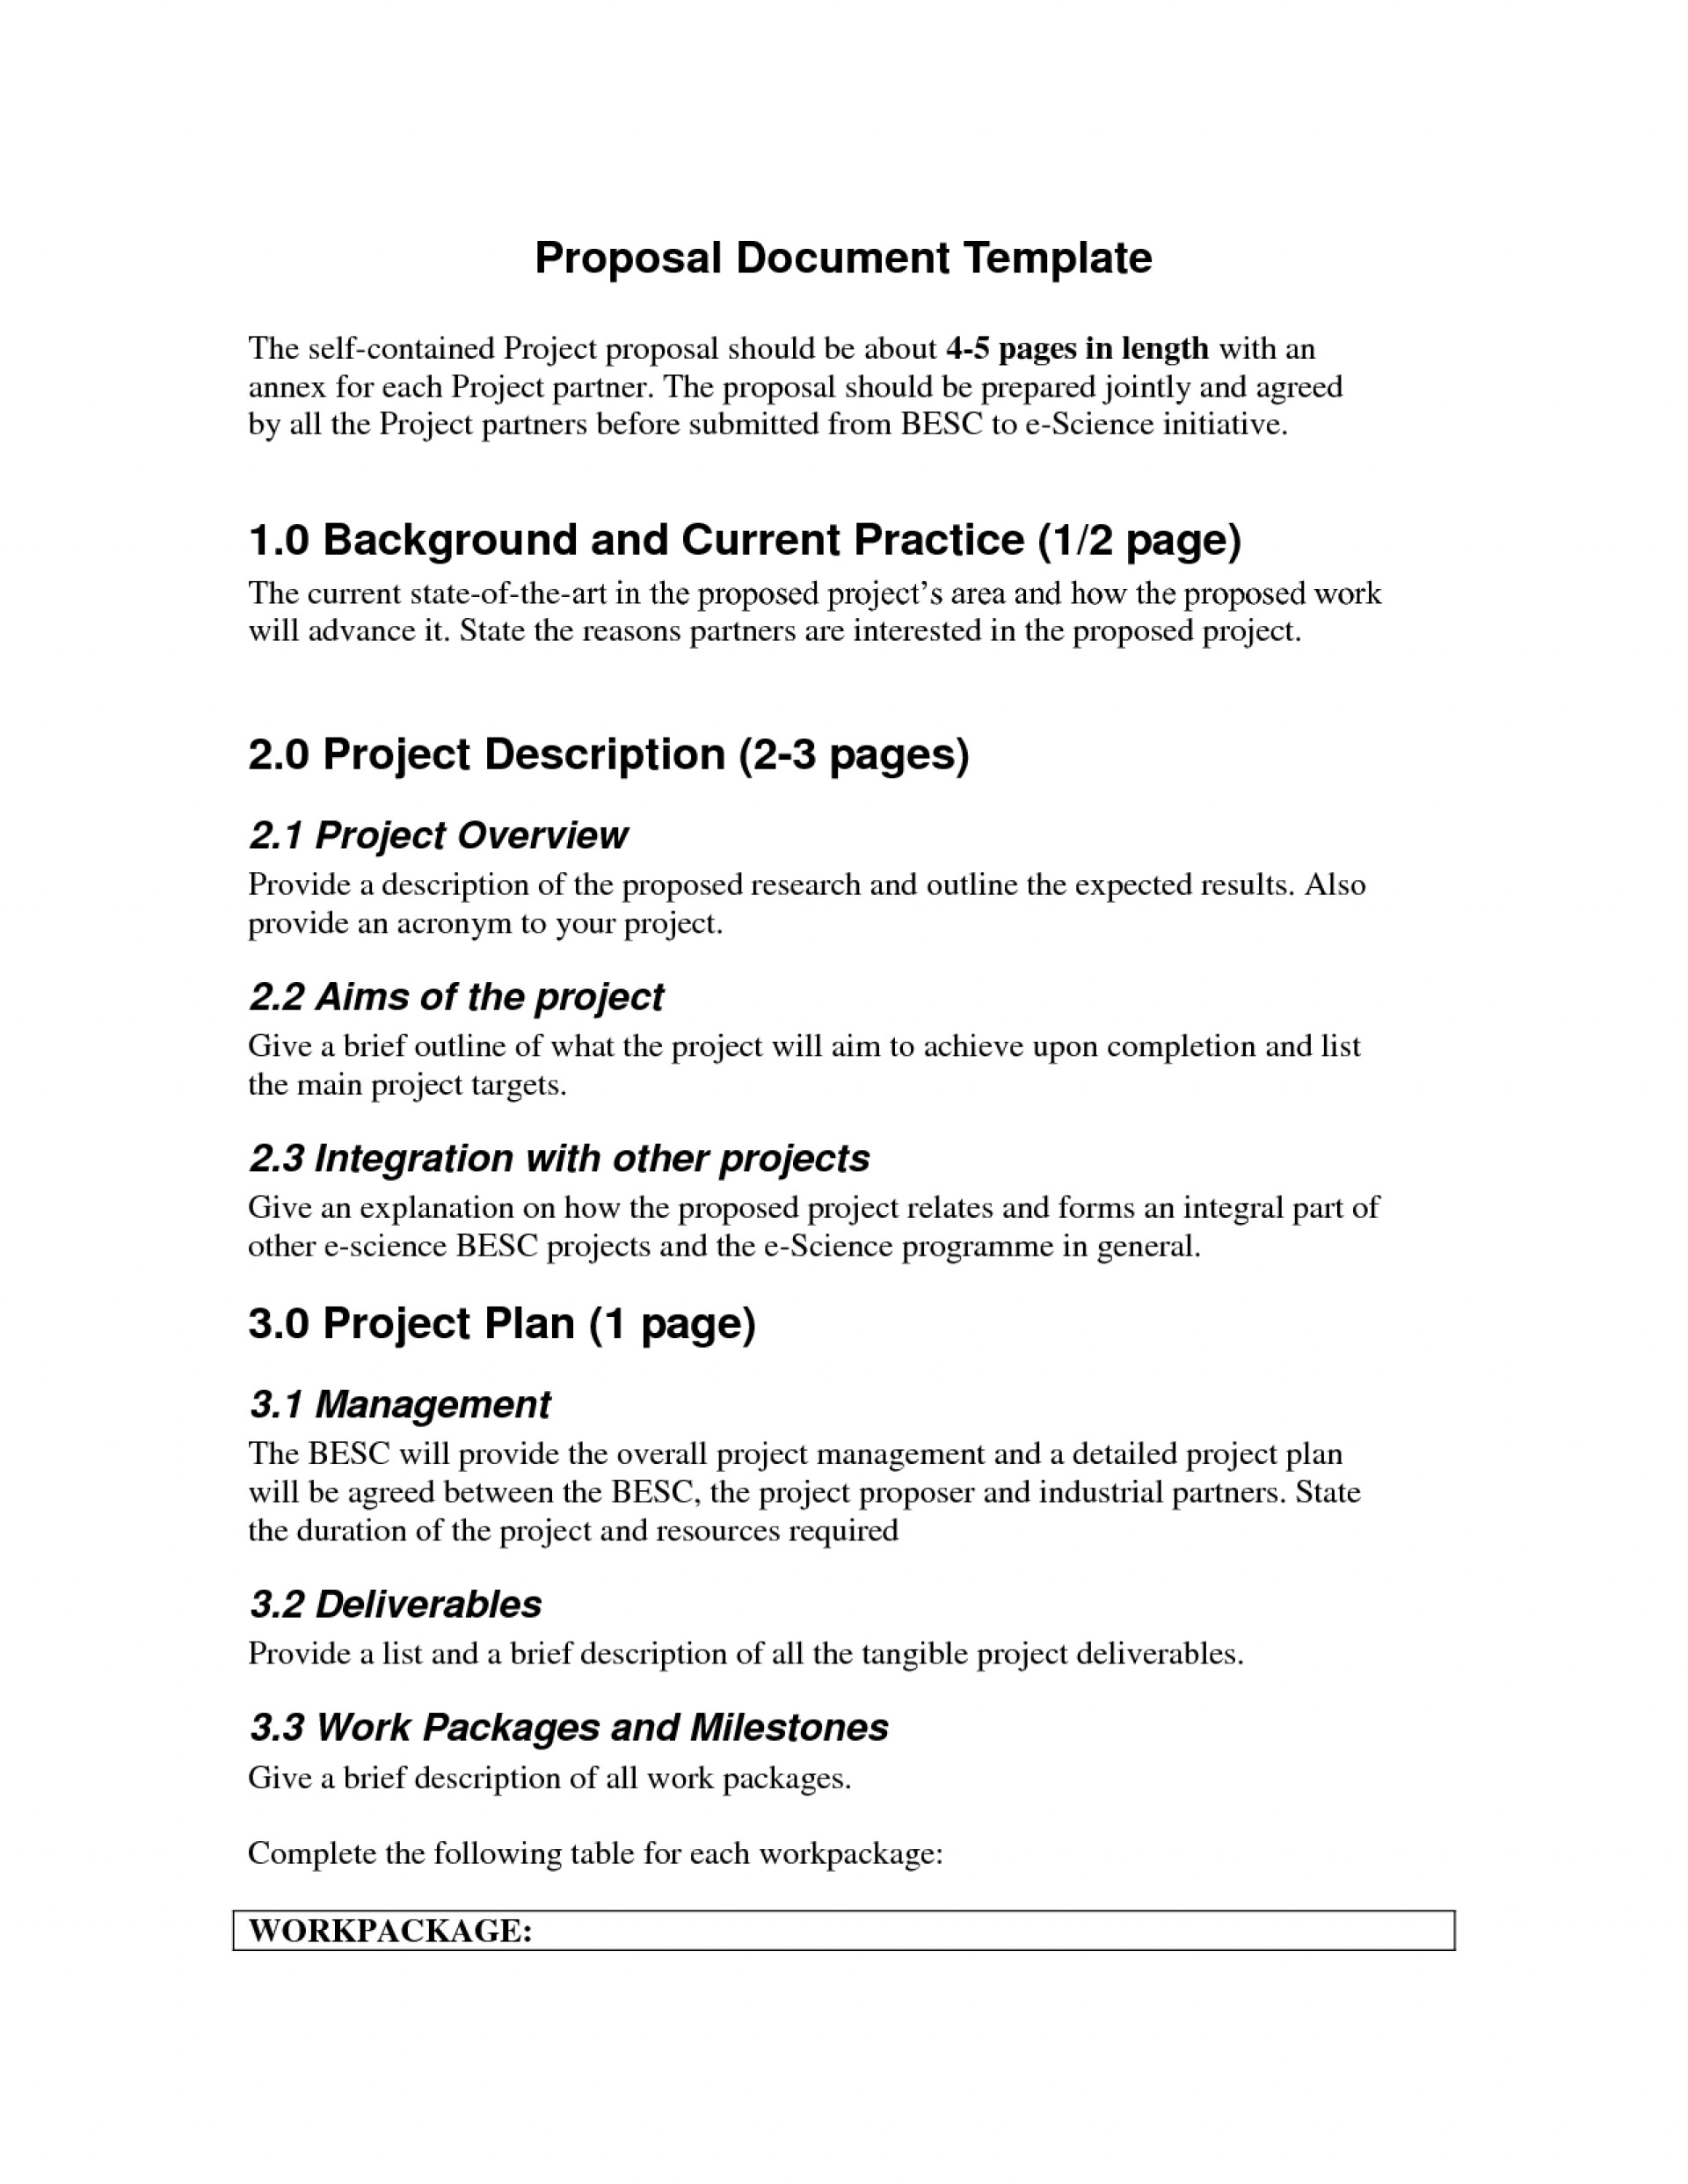 004 Essay Proposal Template Topics Before Students How Long To Write Page In Hours Good About Yourself Should It Take Does Fast Do You On Book Example Fearsome 3 Gun Control Double Spaced Word Count 1920